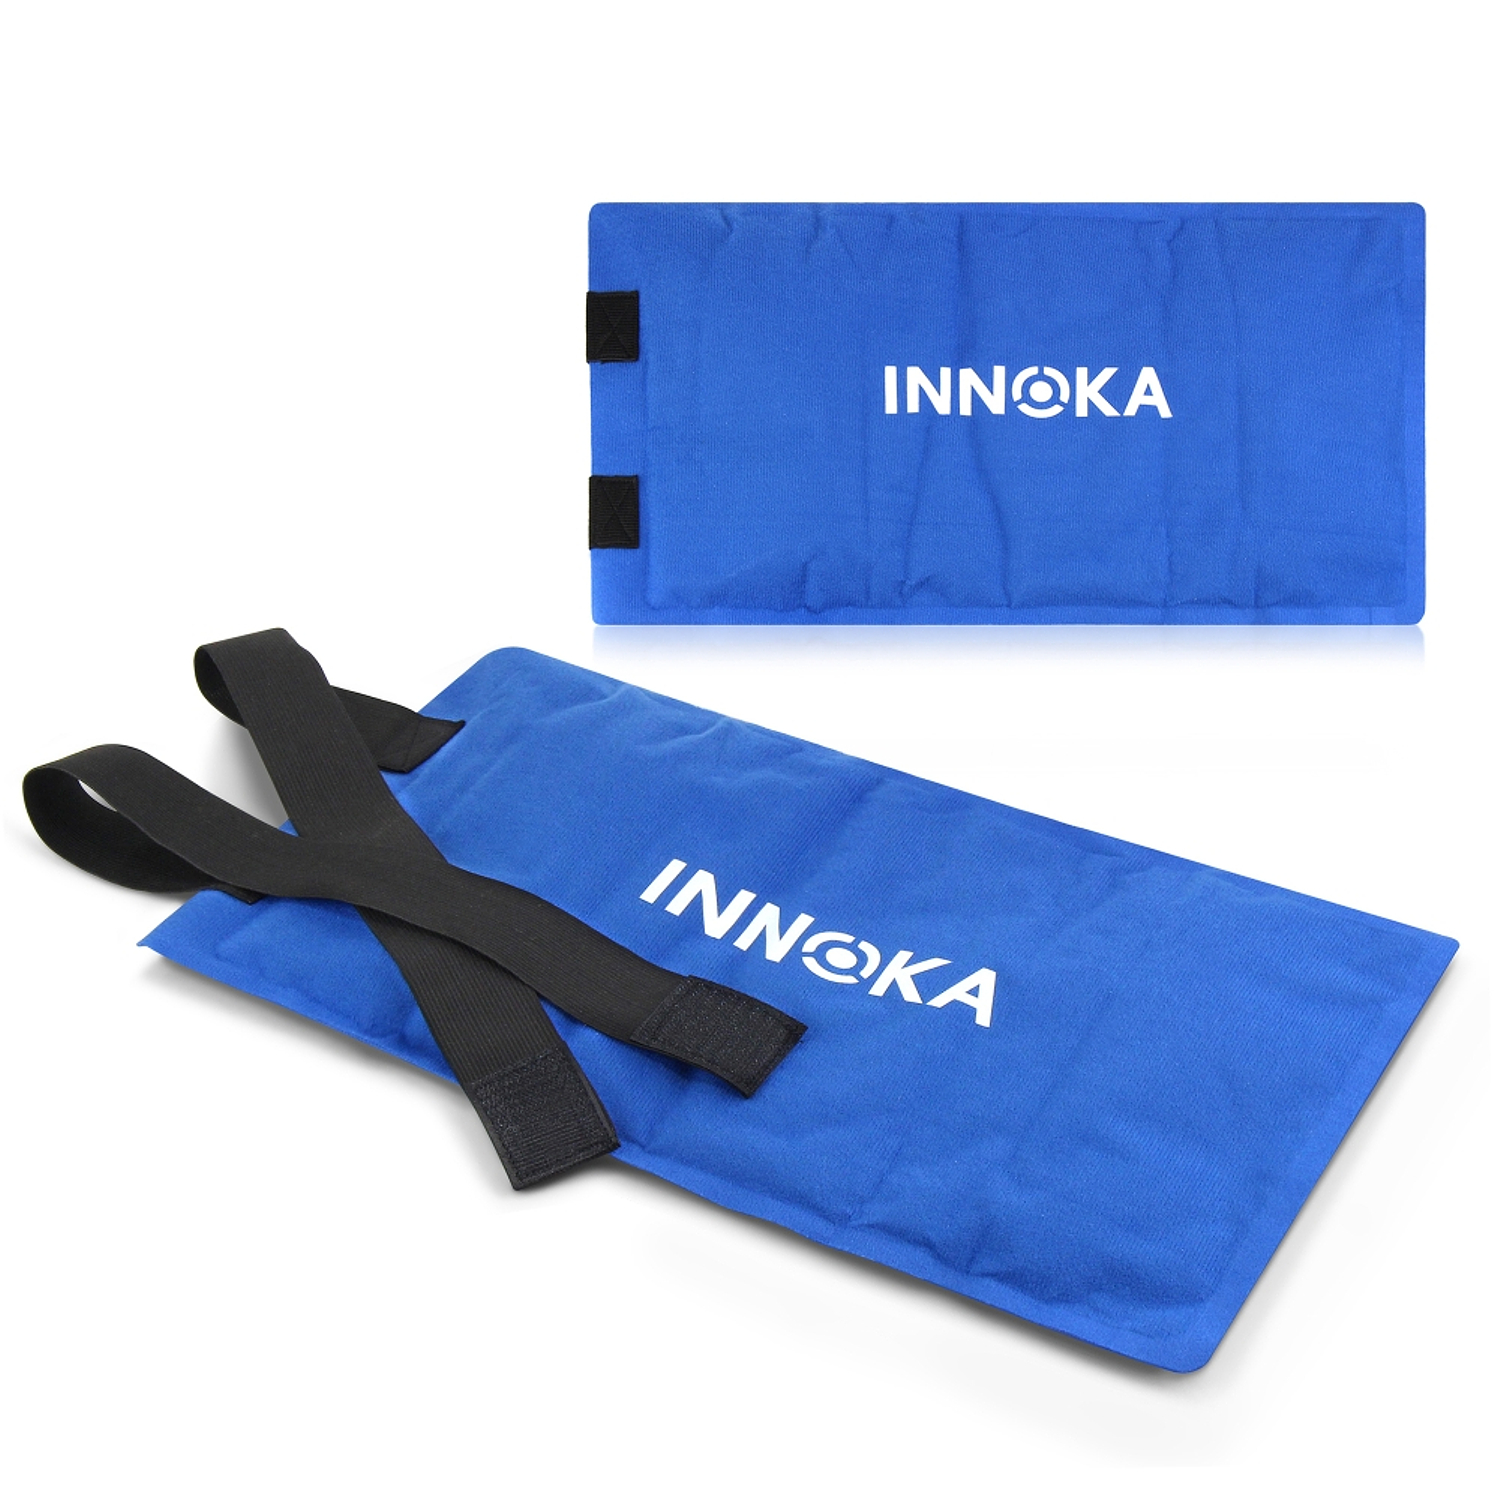 Innoka Dual Hot & Cold Large Therapy Treatment Clay Pack with Adjustable Strap for Relief Knee Elbow Back Body Pain - Blue